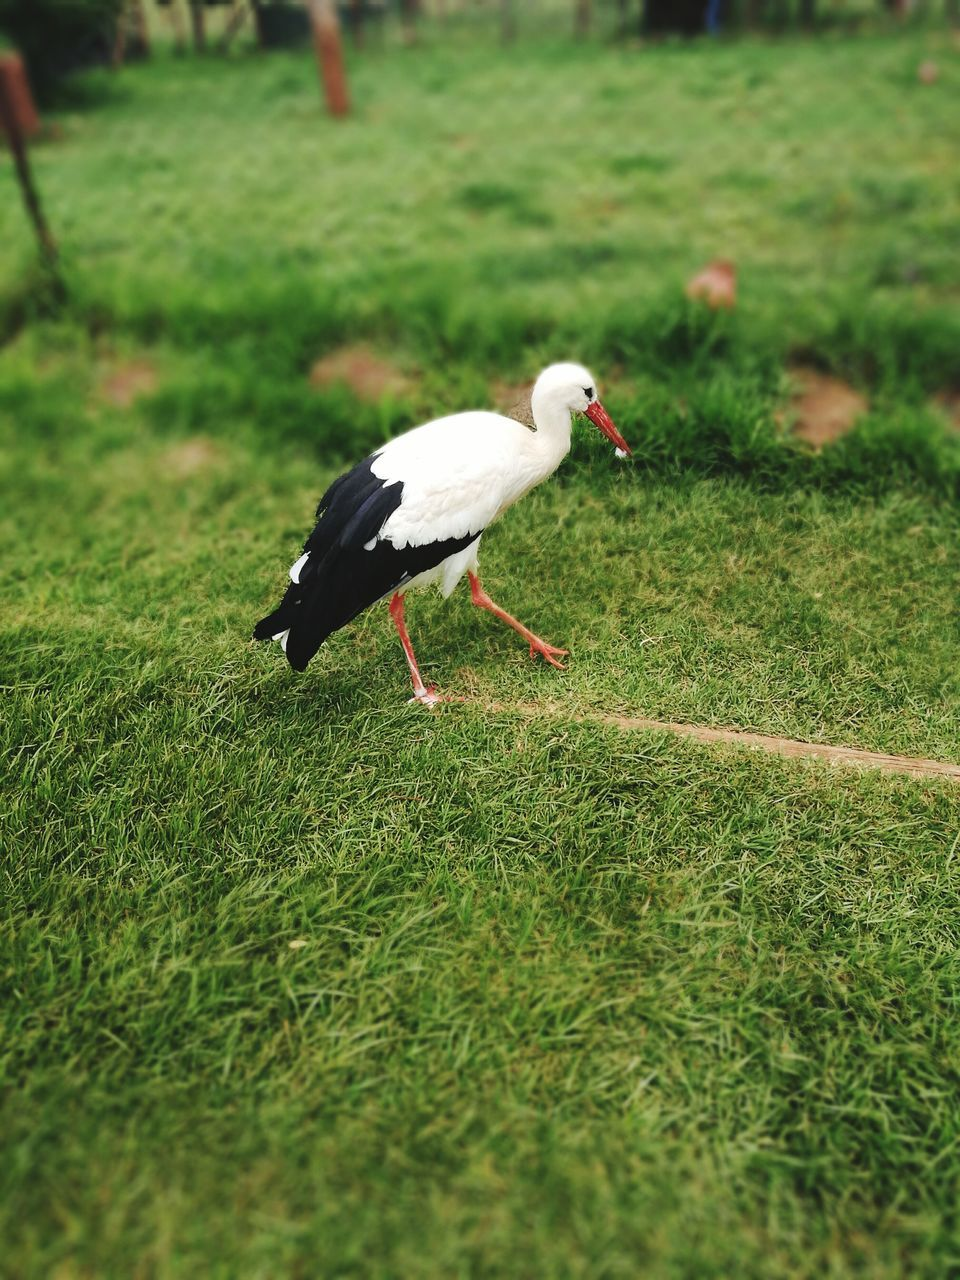 grass, animal themes, bird, one animal, animals in the wild, field, day, nature, animal wildlife, outdoors, no people